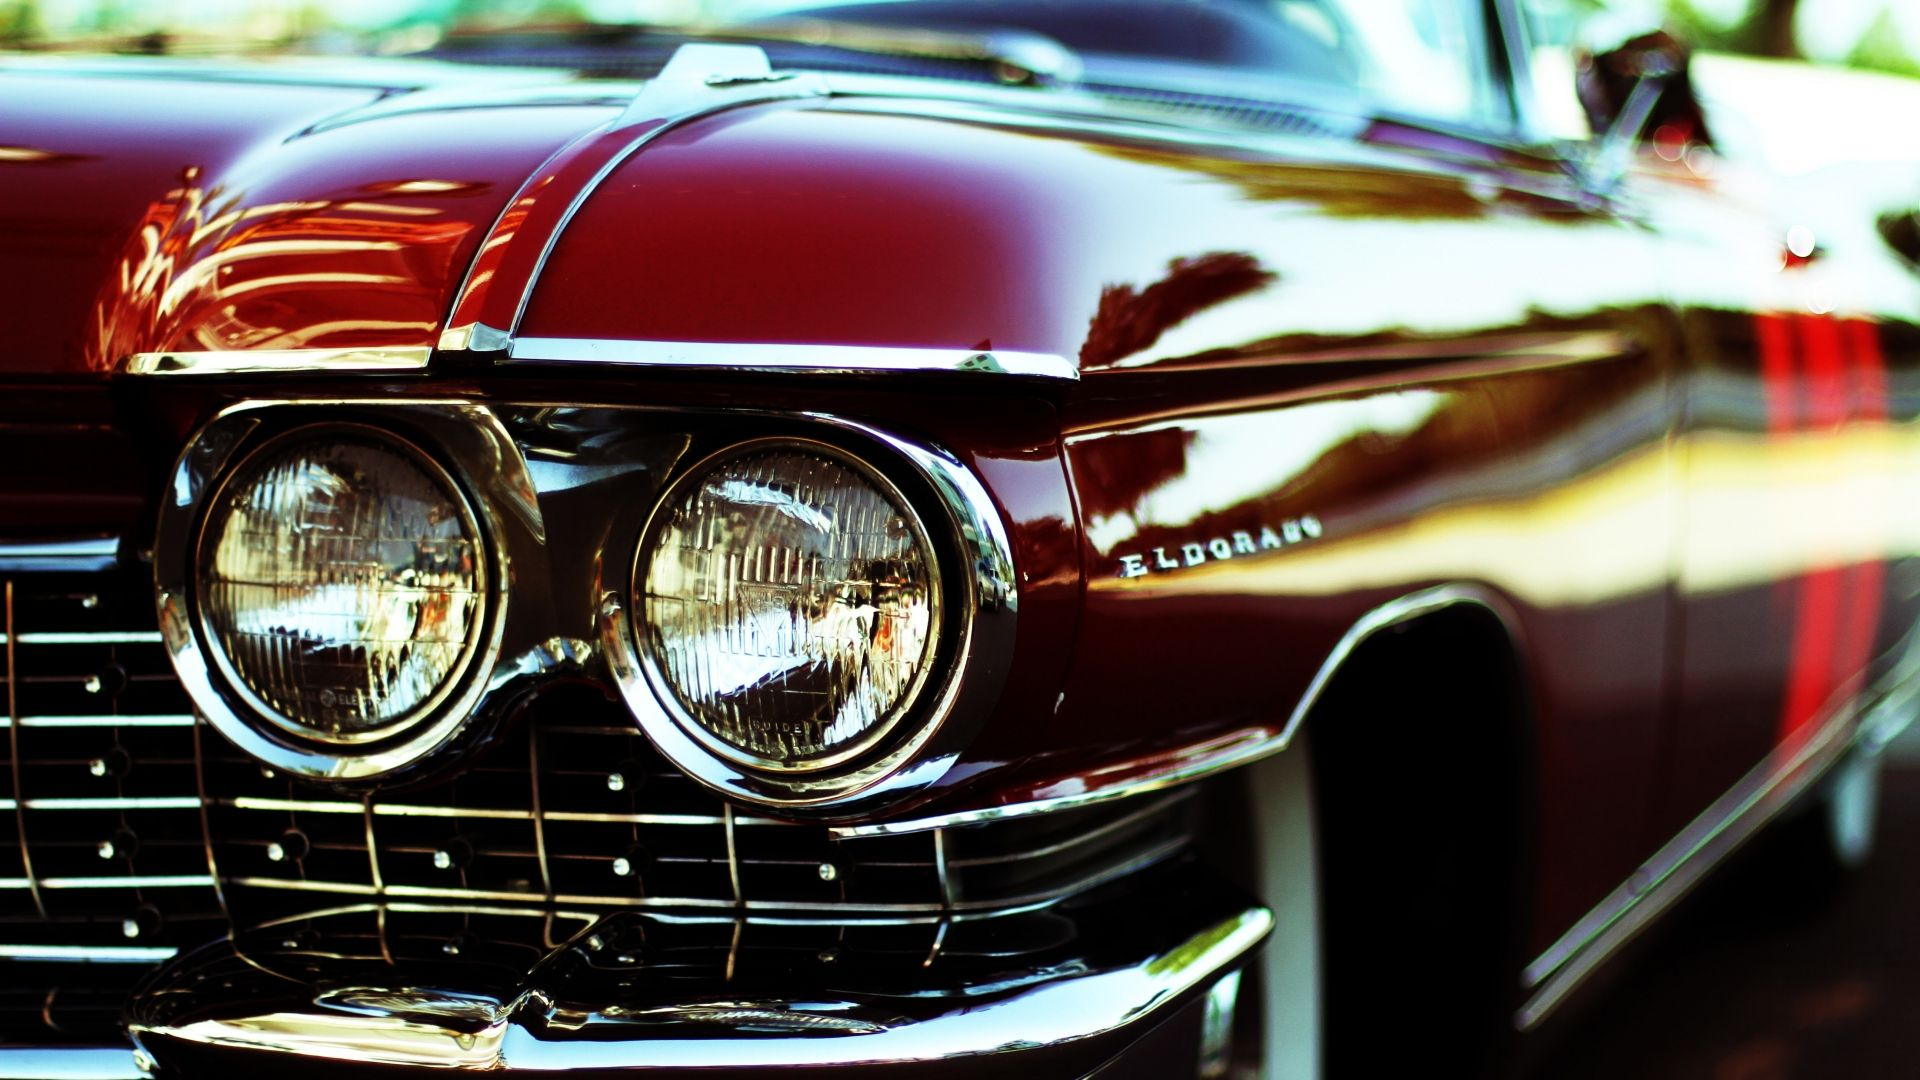 Cadillac Eldorado Classic Car Wallpapers And Backgrounds Hd Car